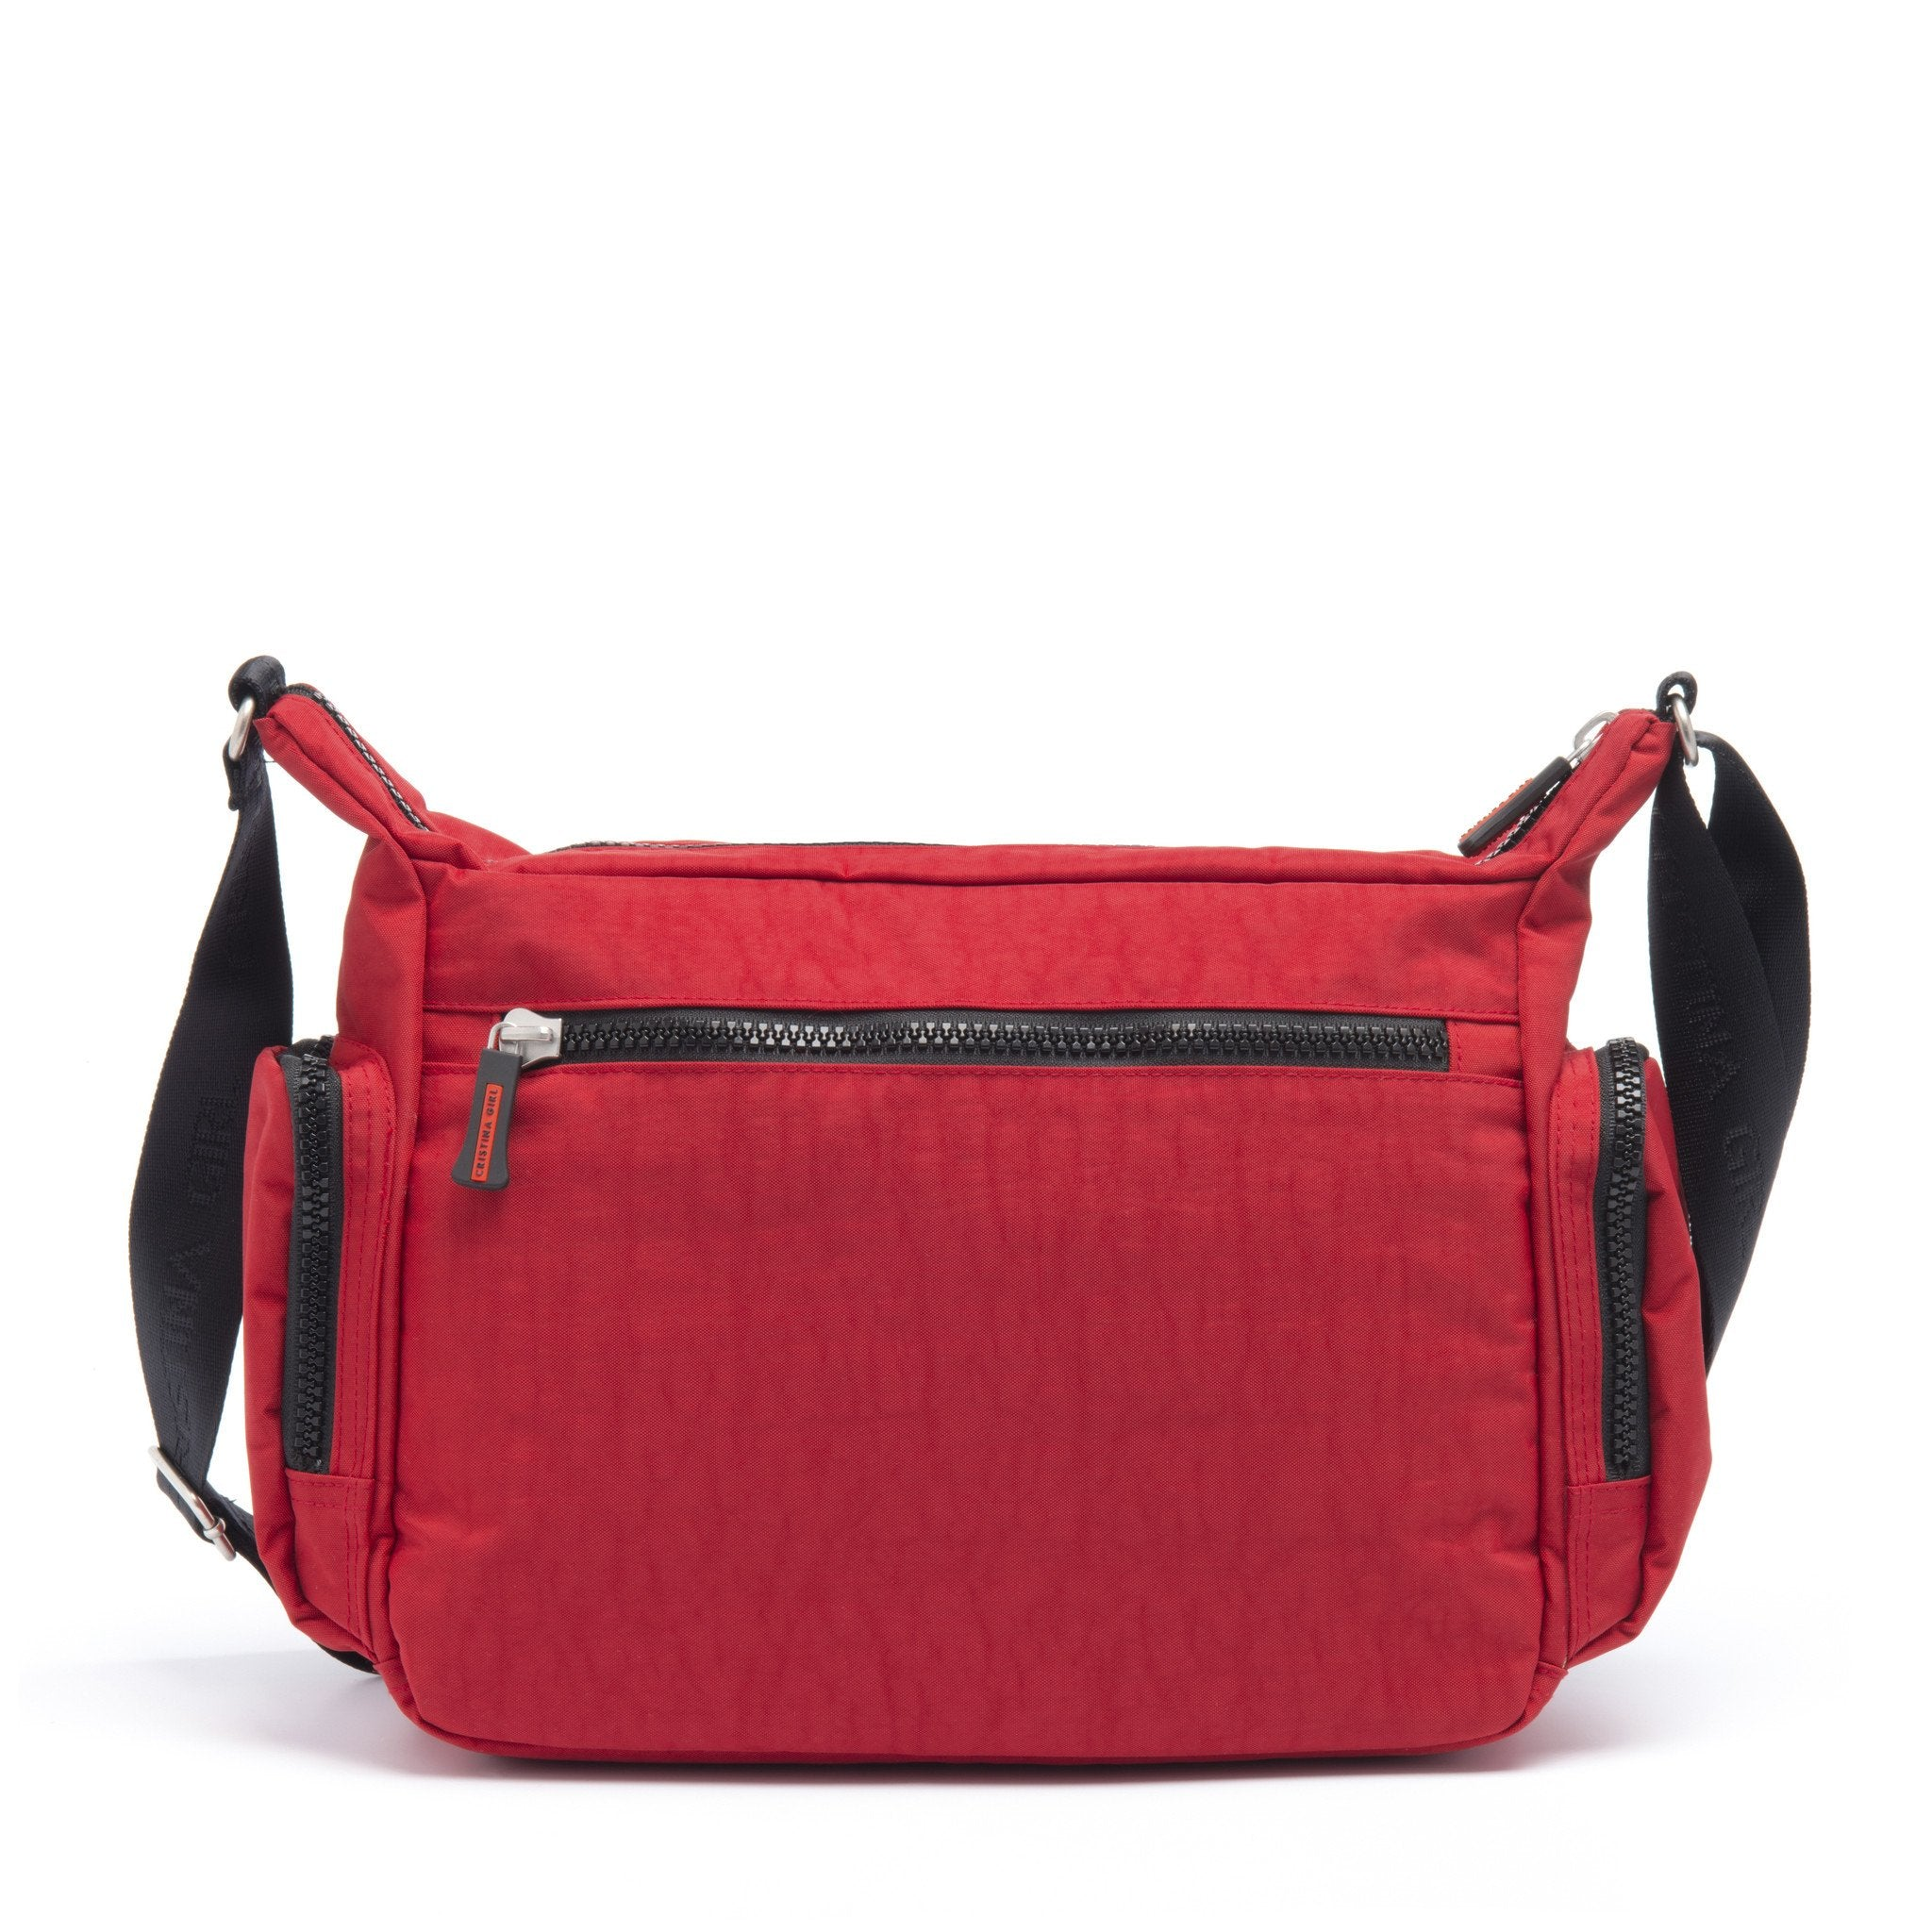 Cristina Girl Cross Body Bag Crinkle Nylon Lily Collection - Spanish Red